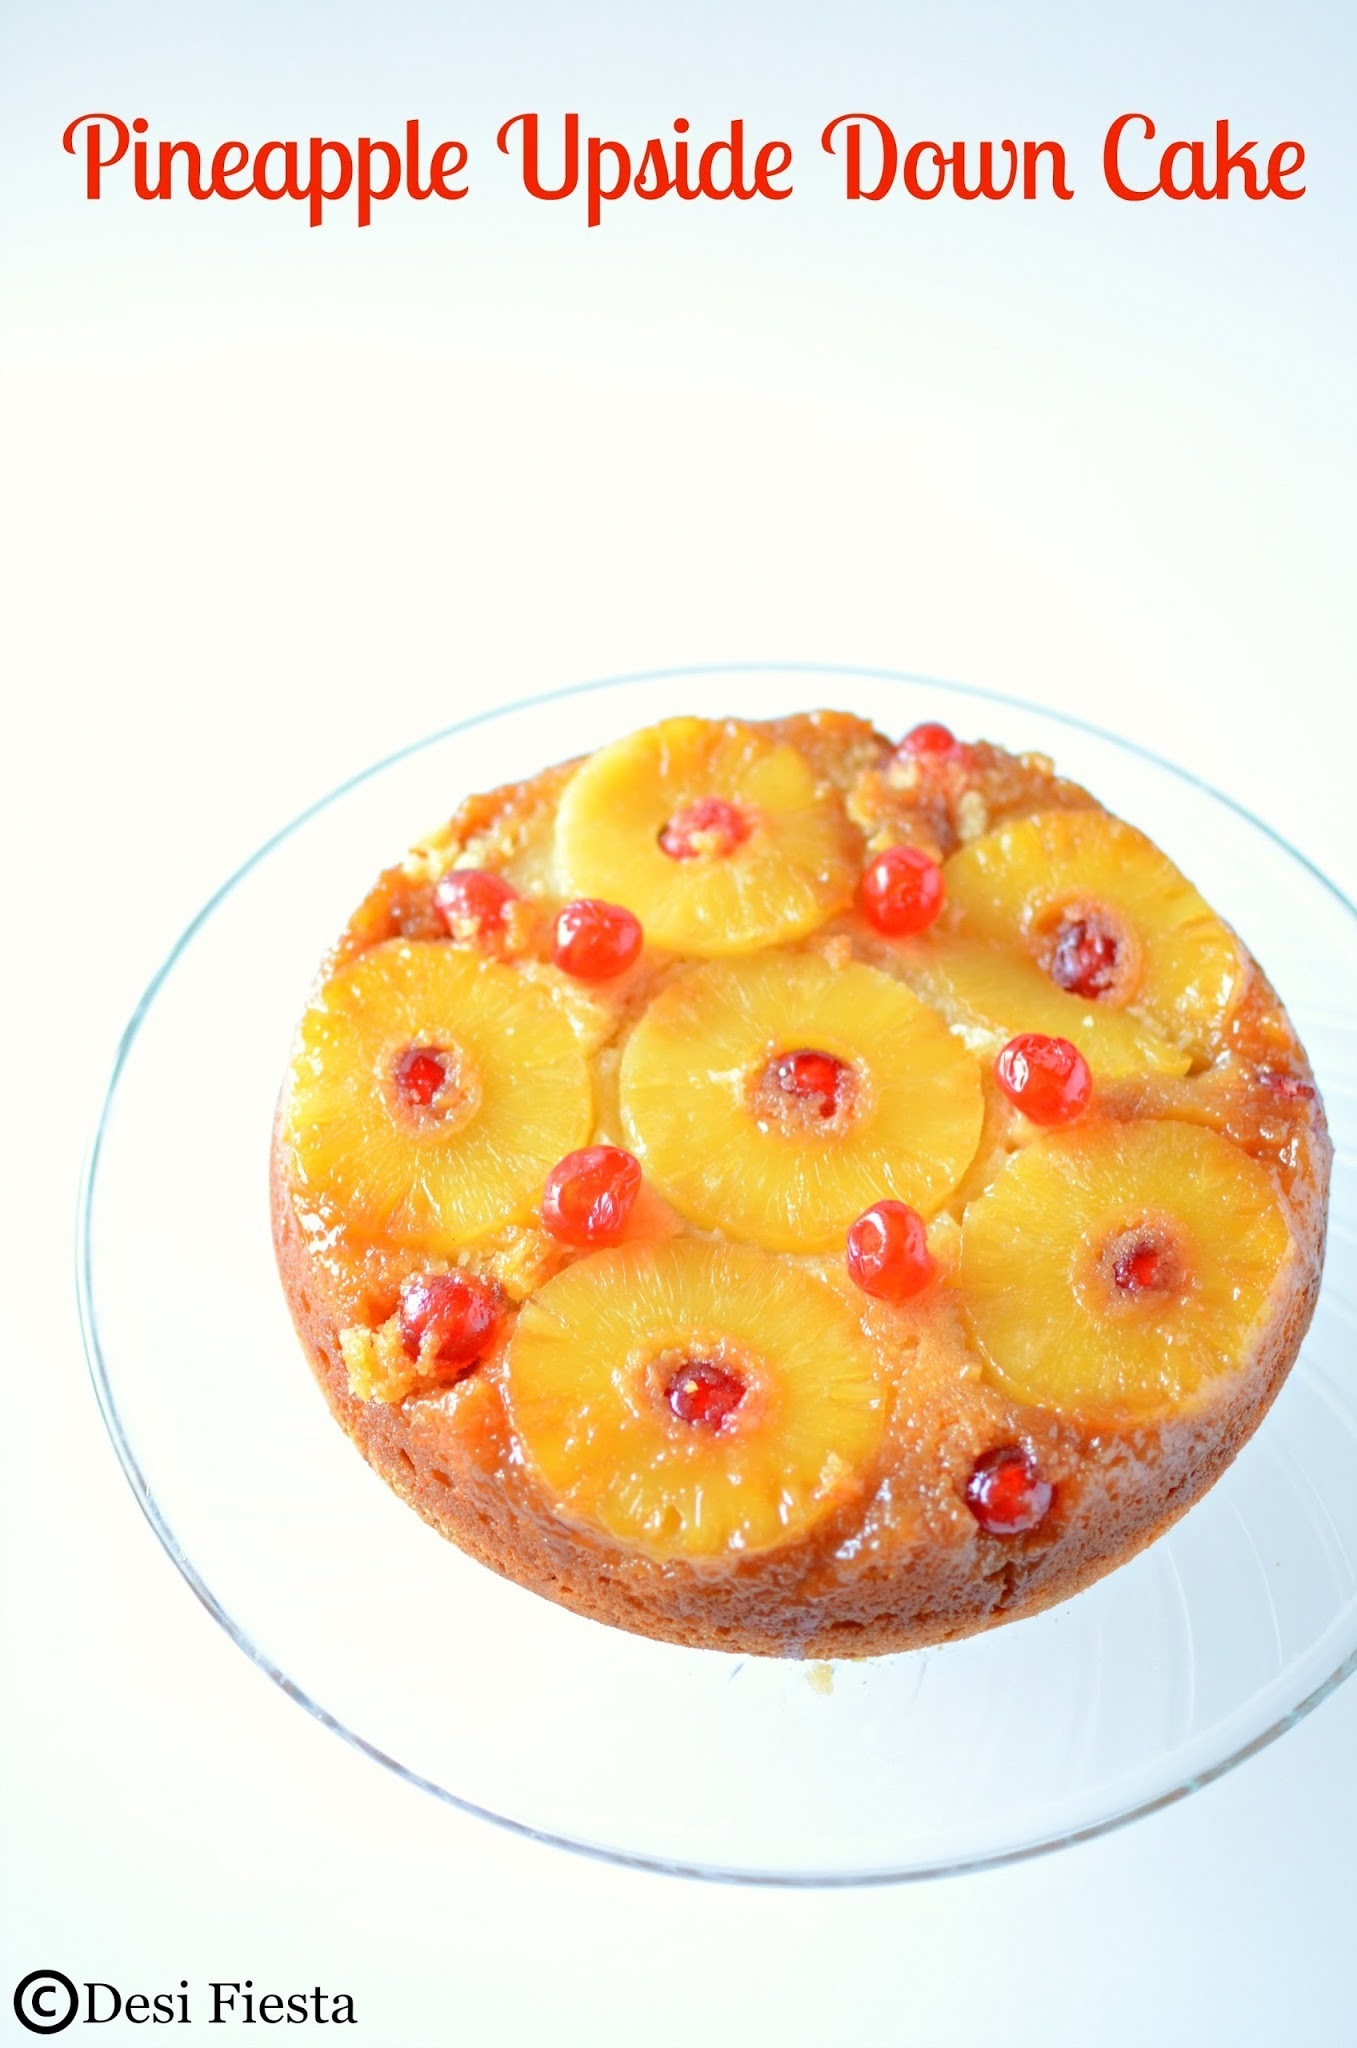 Pineapple Upside Down Cake | Eggless Pineapple Upside Down Cake